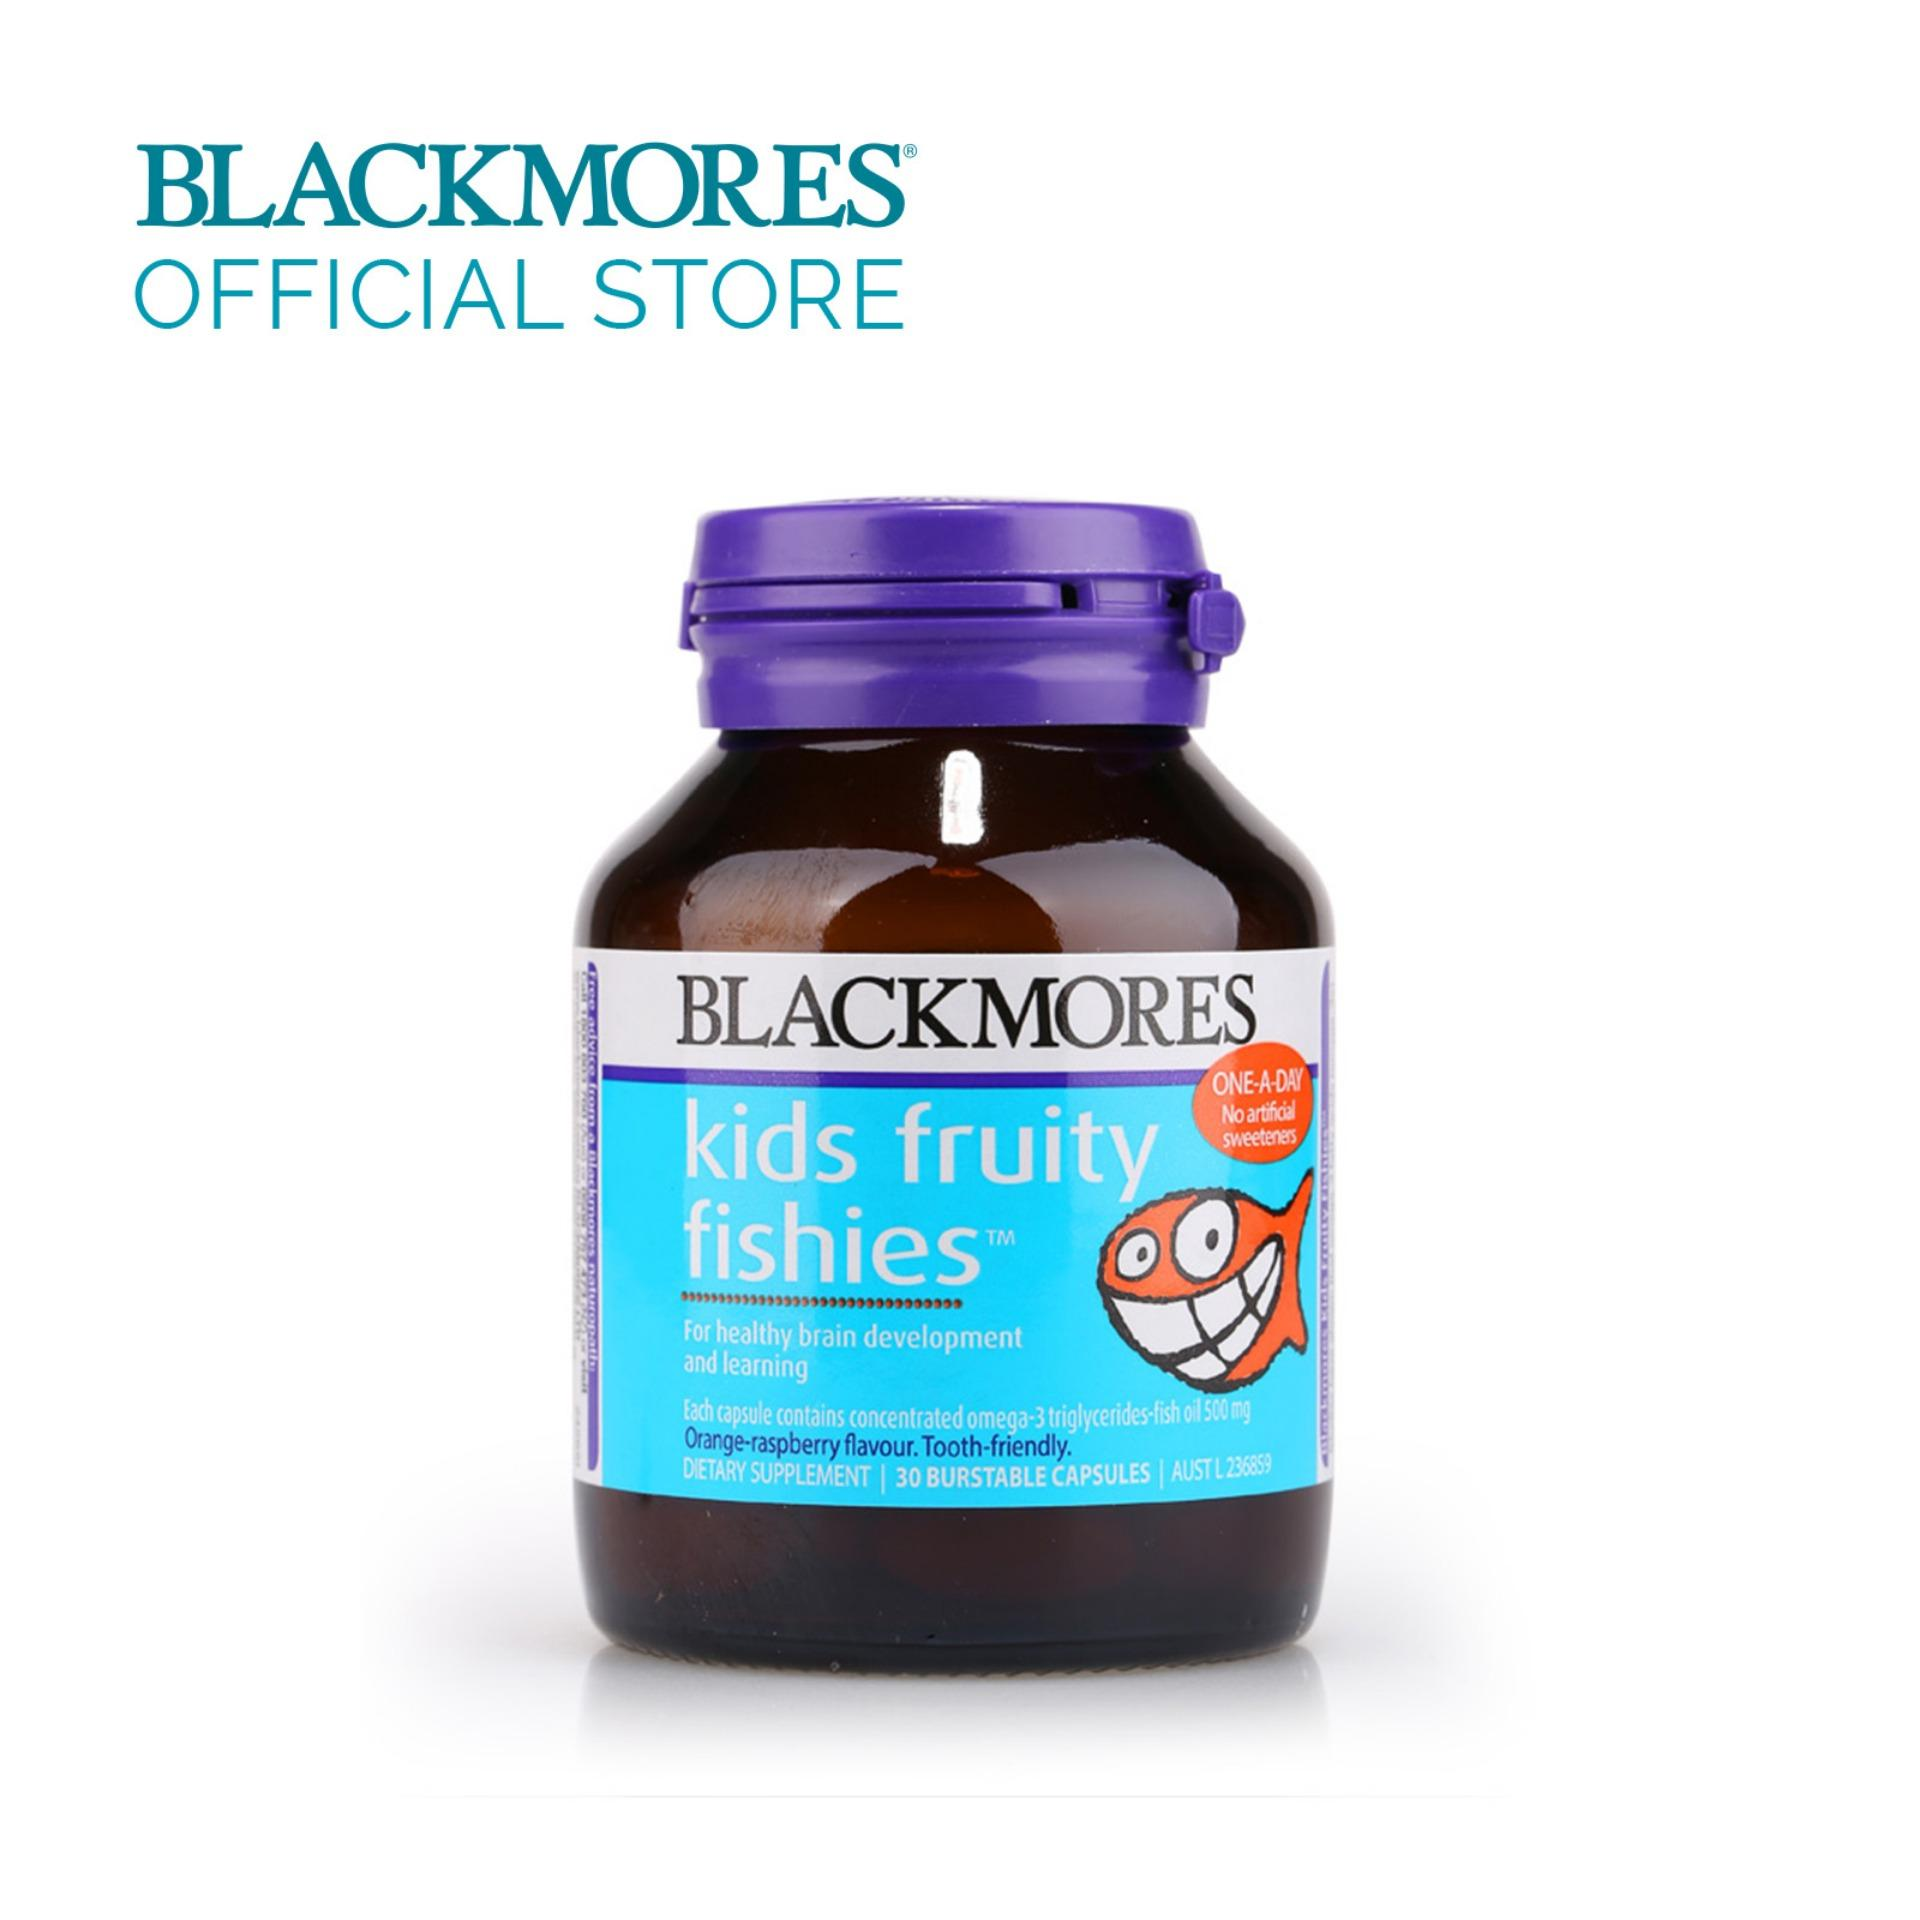 Blackmores Kids Fruity Fishies 30s By Blackmores Official Store.